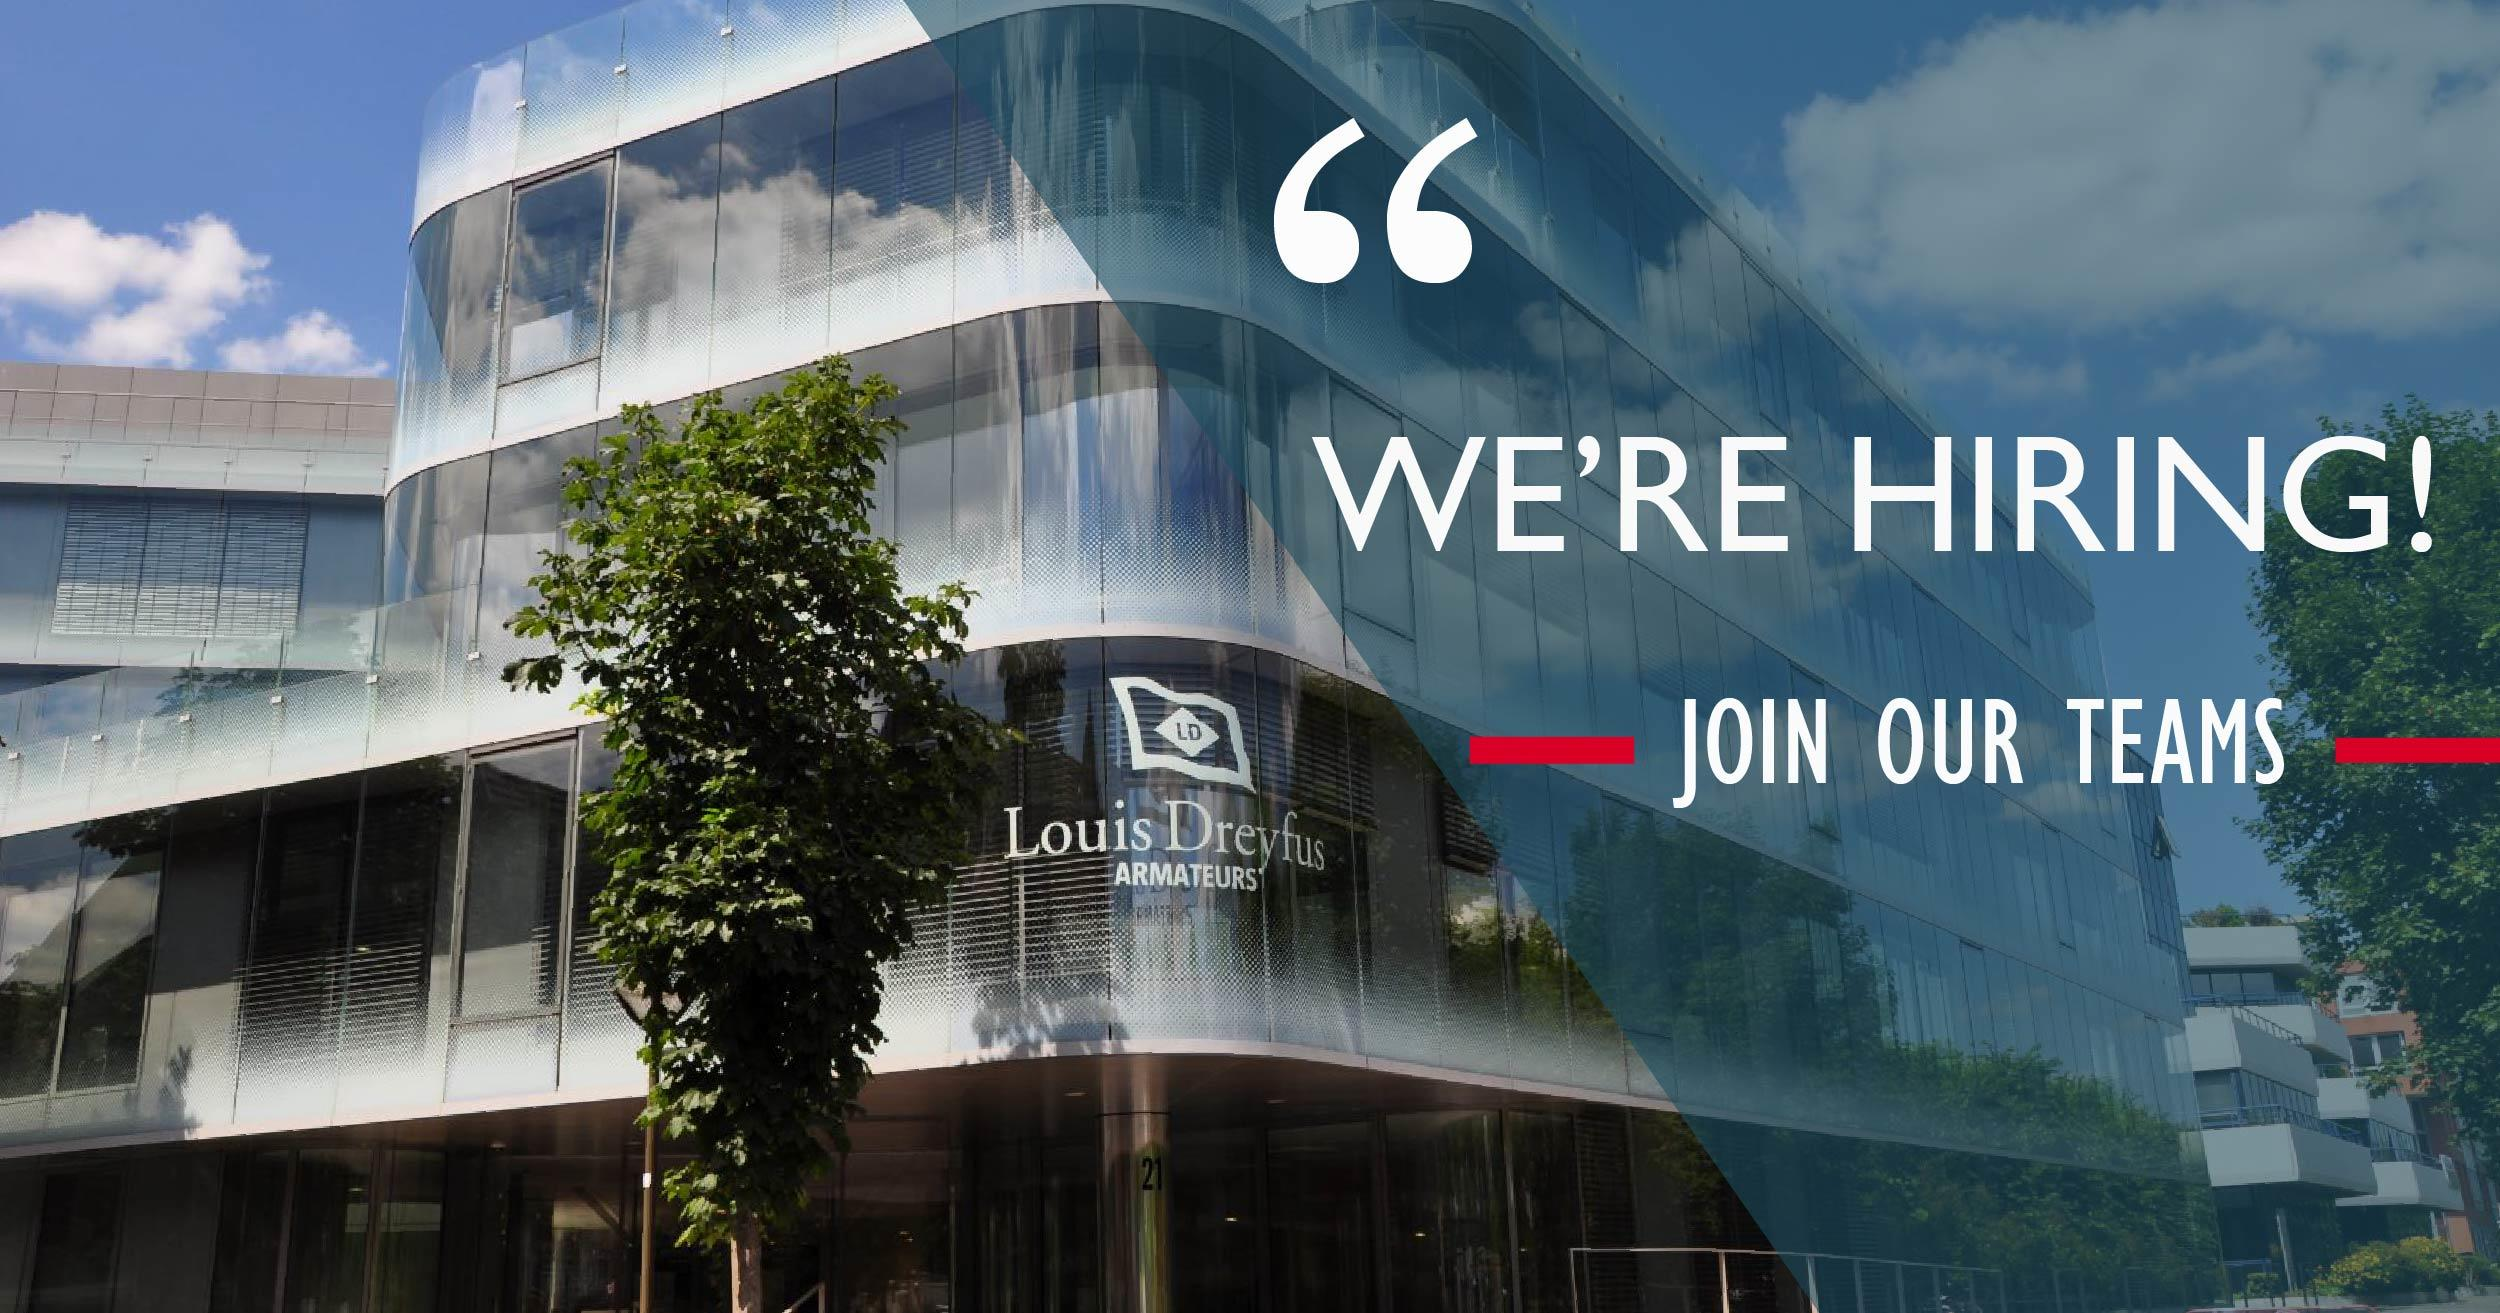 We are hiring at LDA